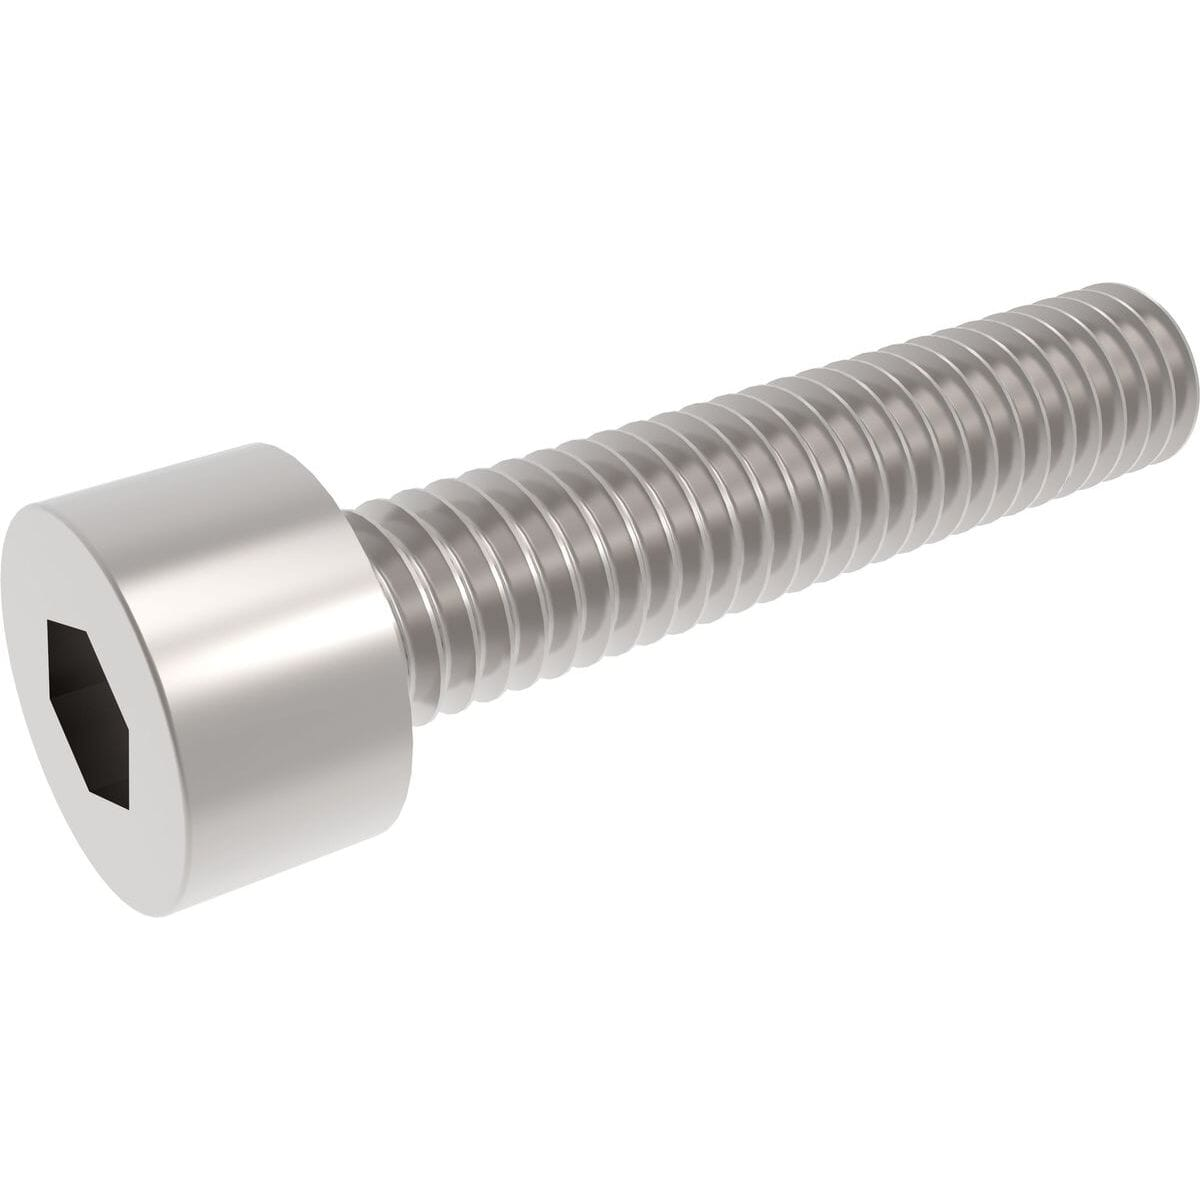 M10 x 12mm Full Thread Cap Head Screws (DIN 912) - Marine Stainless Steel (A4)